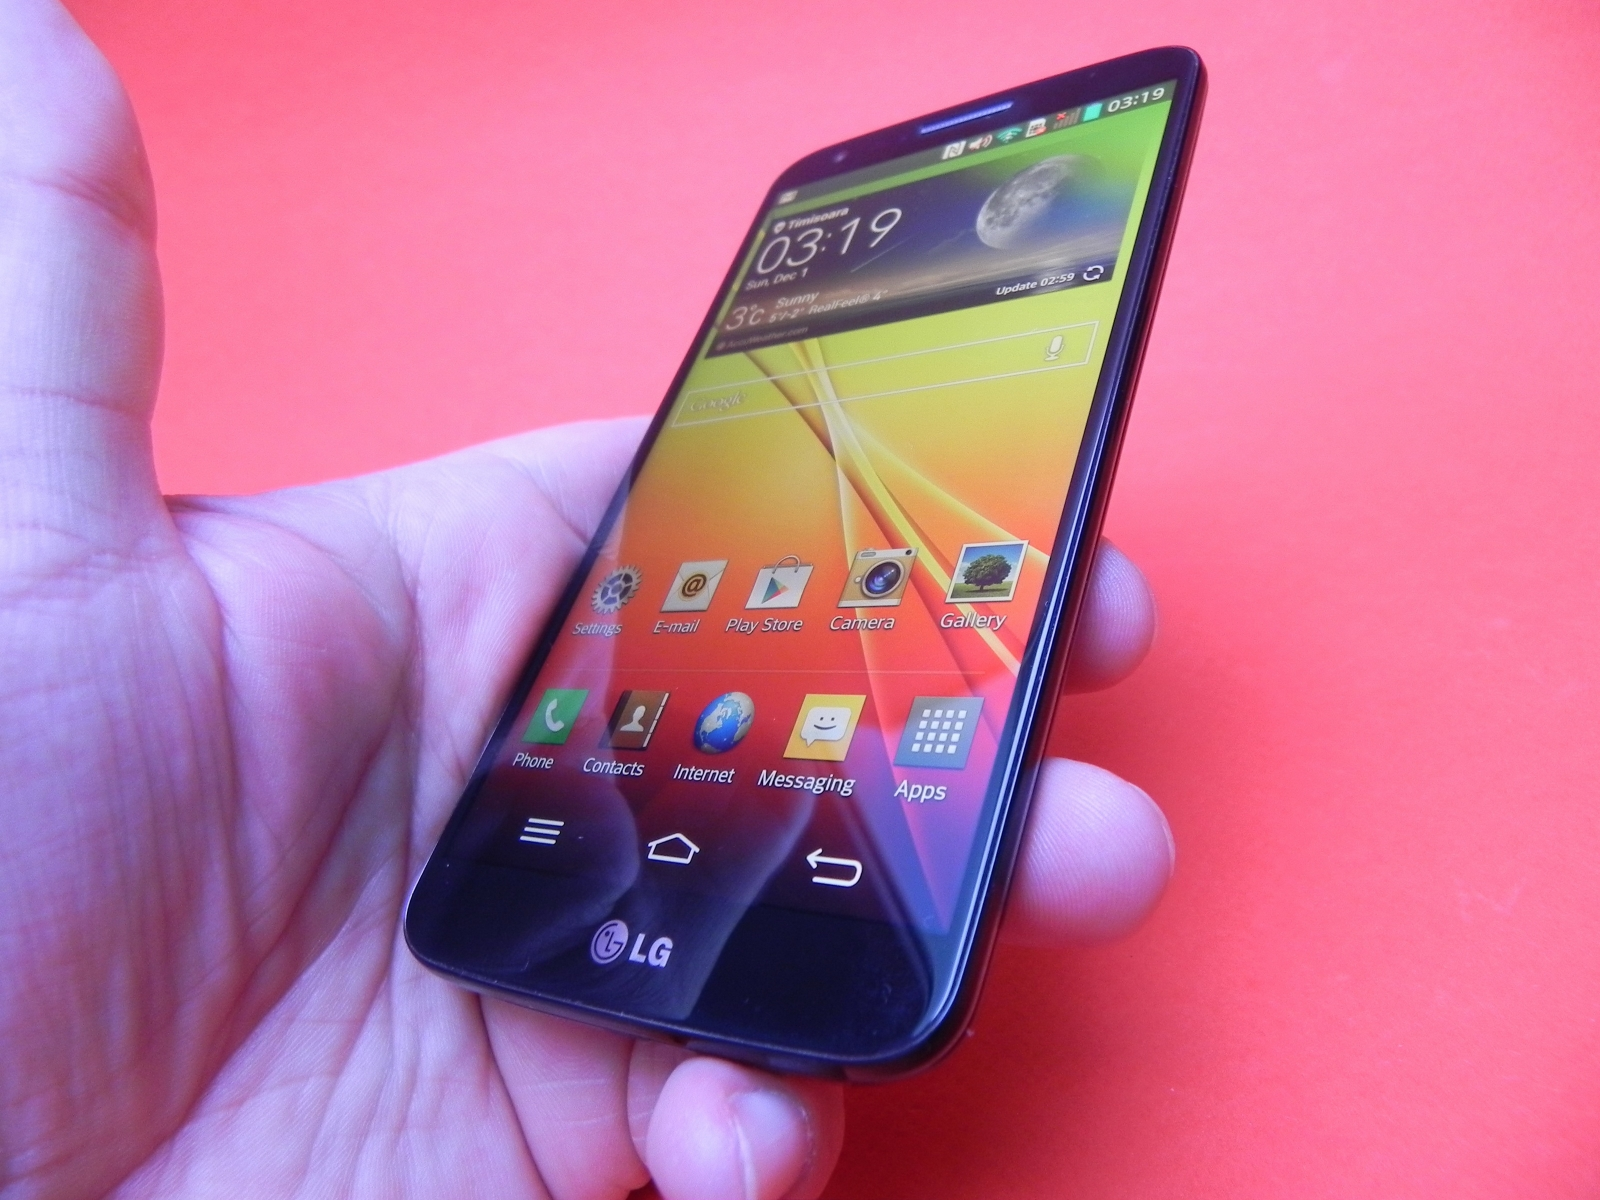 LG G2 – interfata, performanta si baterie